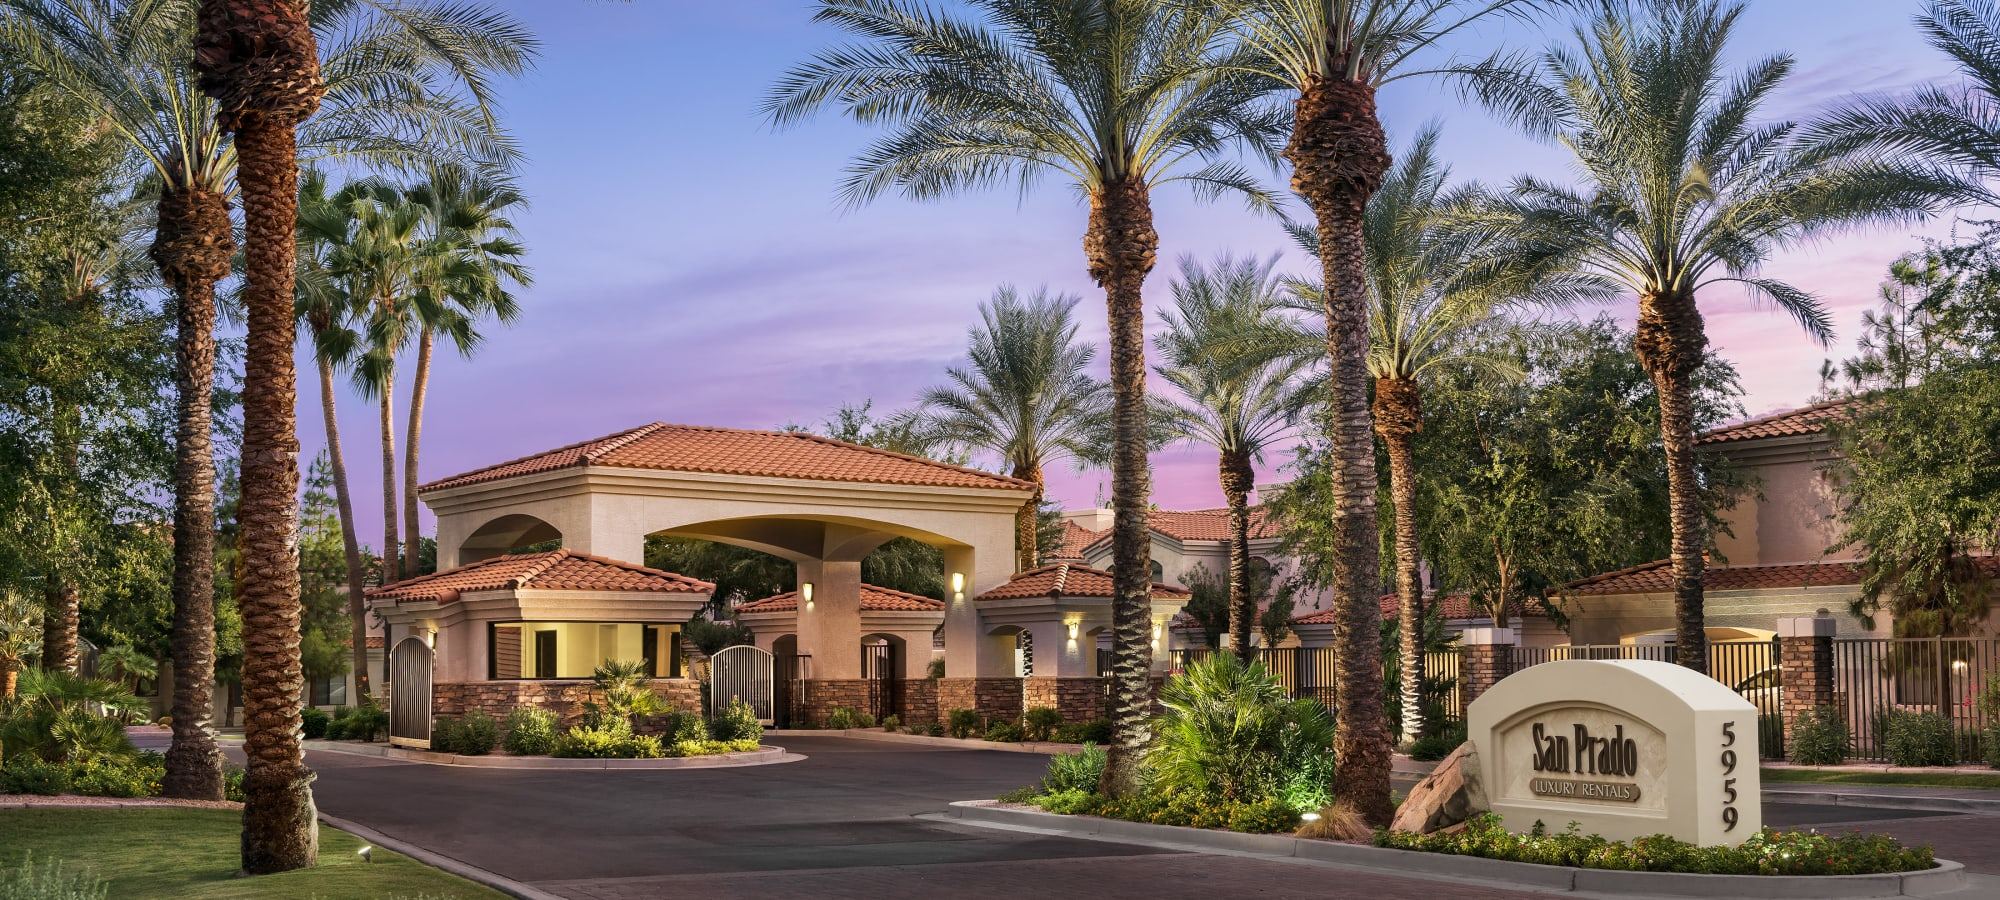 Gated Community at San Prado in Glendale, Arizona